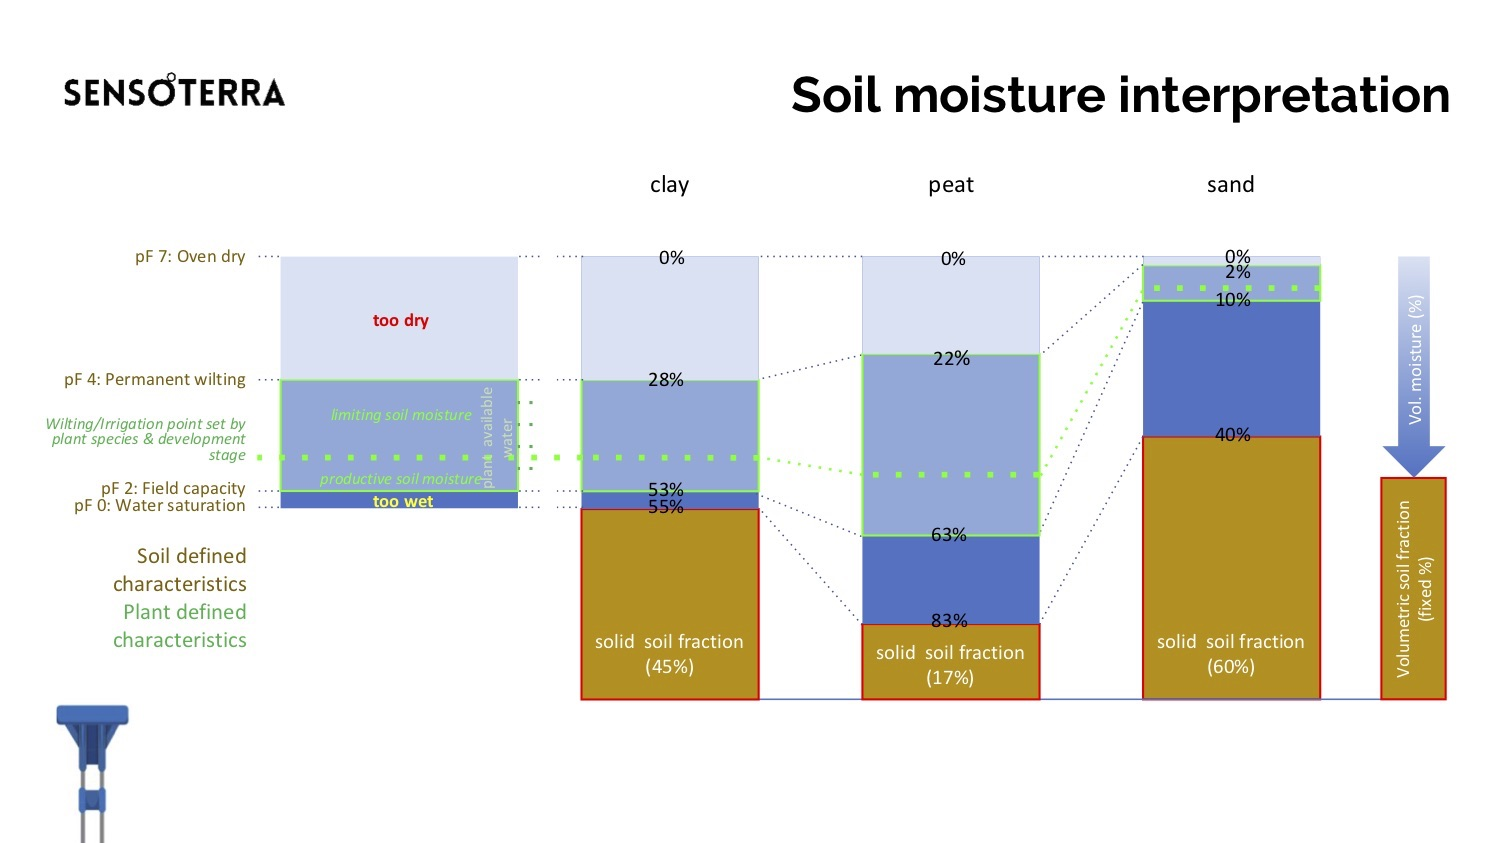 Soil_moisture_interpretation.jpg